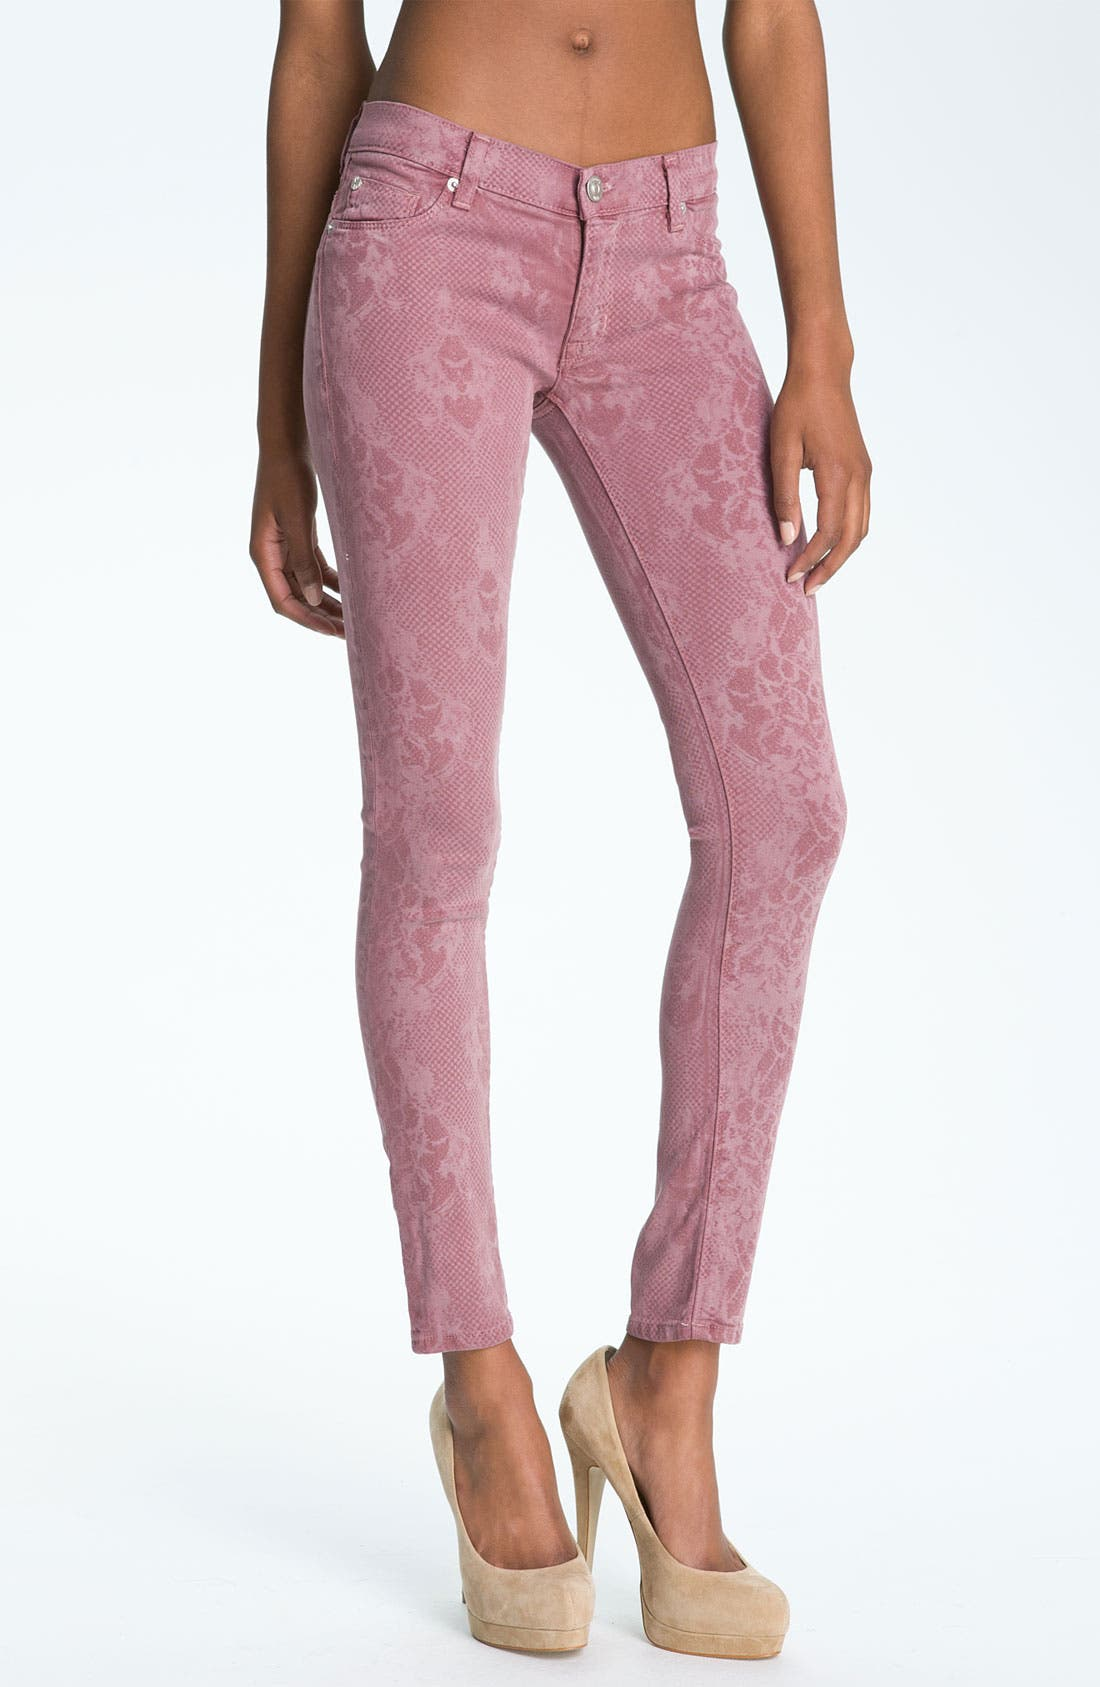 Main Image - Hudson Jeans 'Nico' Mid Rise Skinny Stretch Jeans (Blush Lace)